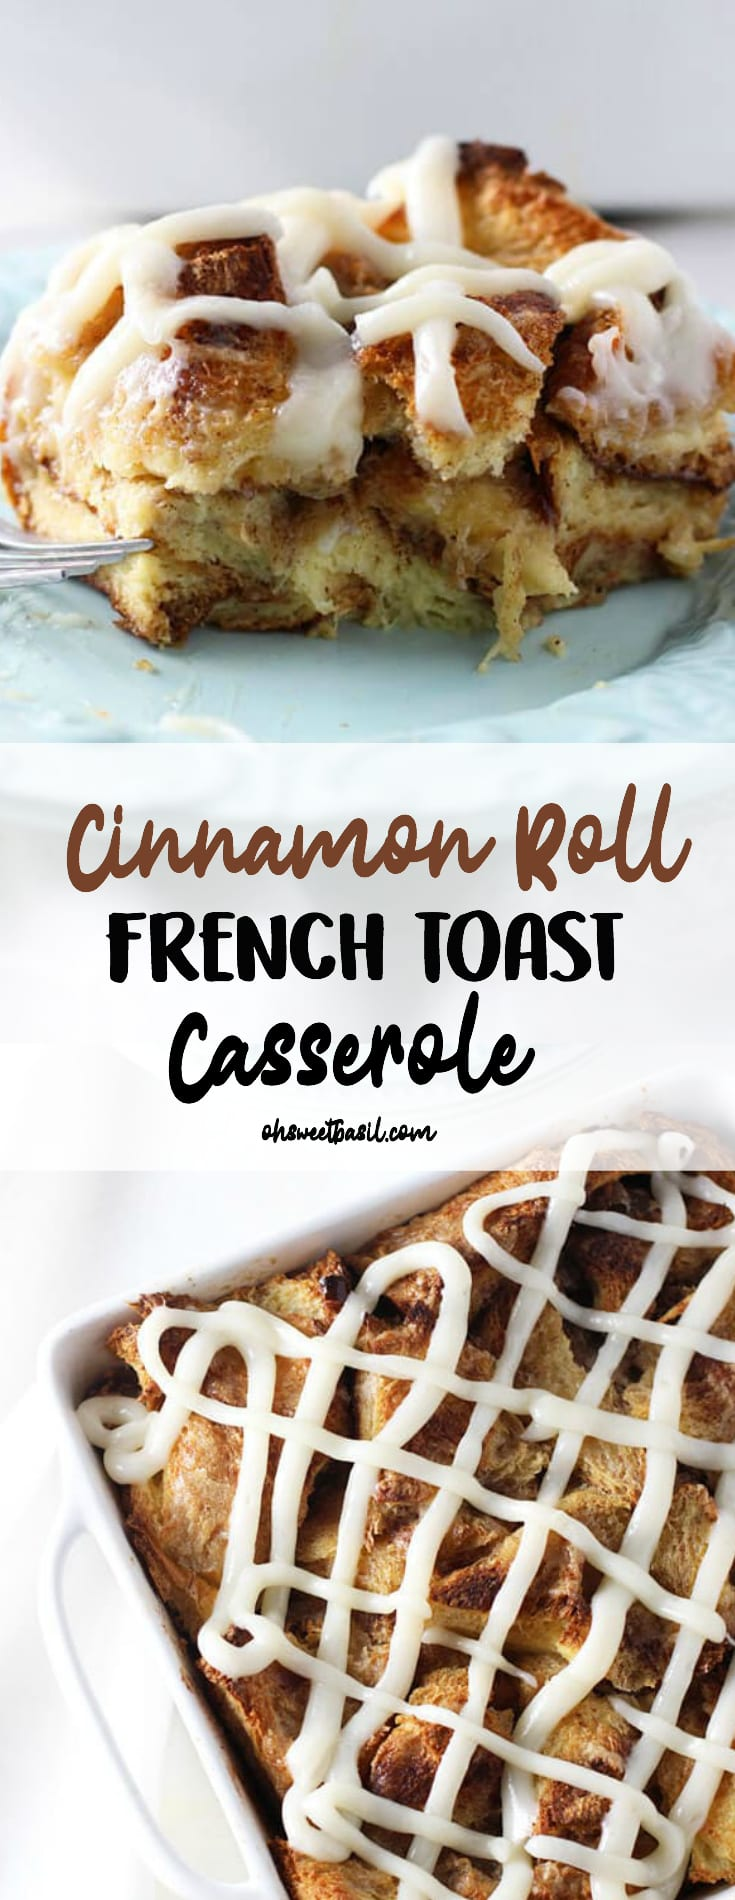 Gooey Cinnamon Roll French Toast Casserole with cream cheese frosting